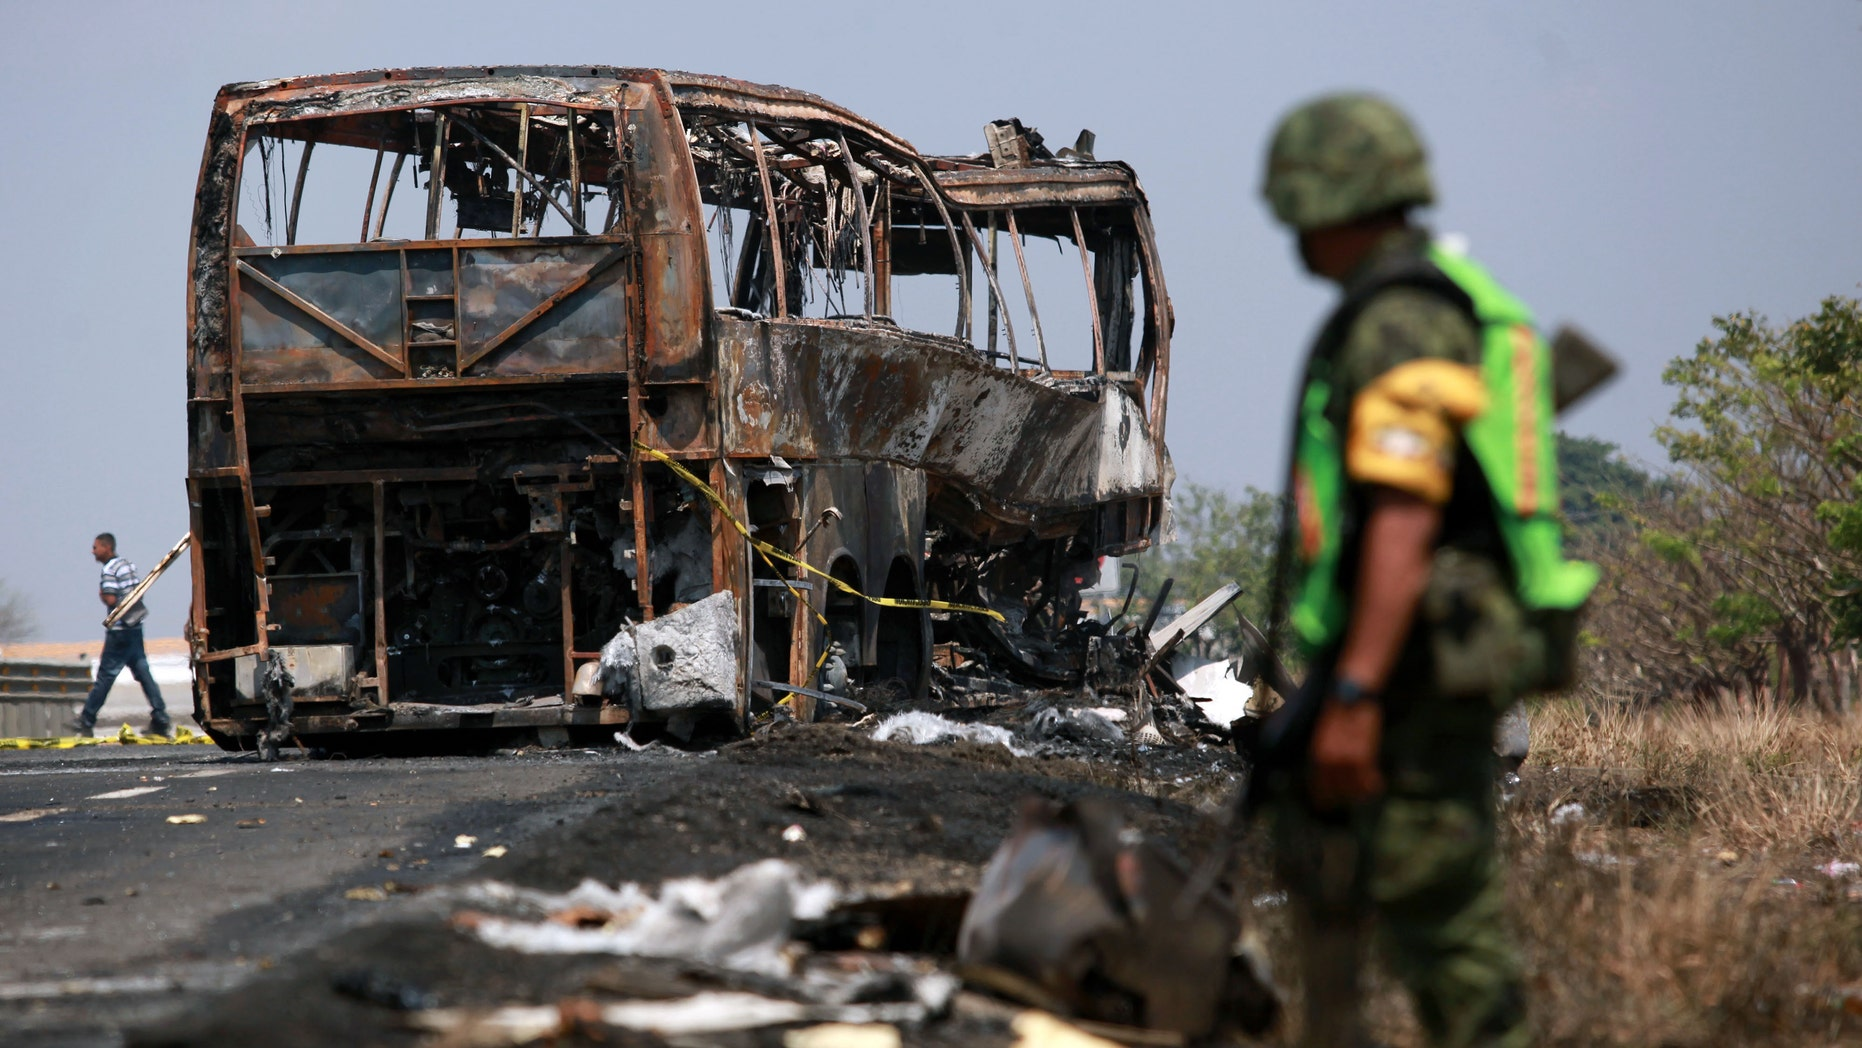 A soldier guards the site where a passenger bus slammed into a broken-down truck and burst into flames near the town of Ciudad Isla in the Gulf state of Veracruz, Mexico, Sunday, April 13, 2014. Dozens of people traveling on the bus to Mexico City burned to death inside the bus. (AP Photo/Felix Marquez)